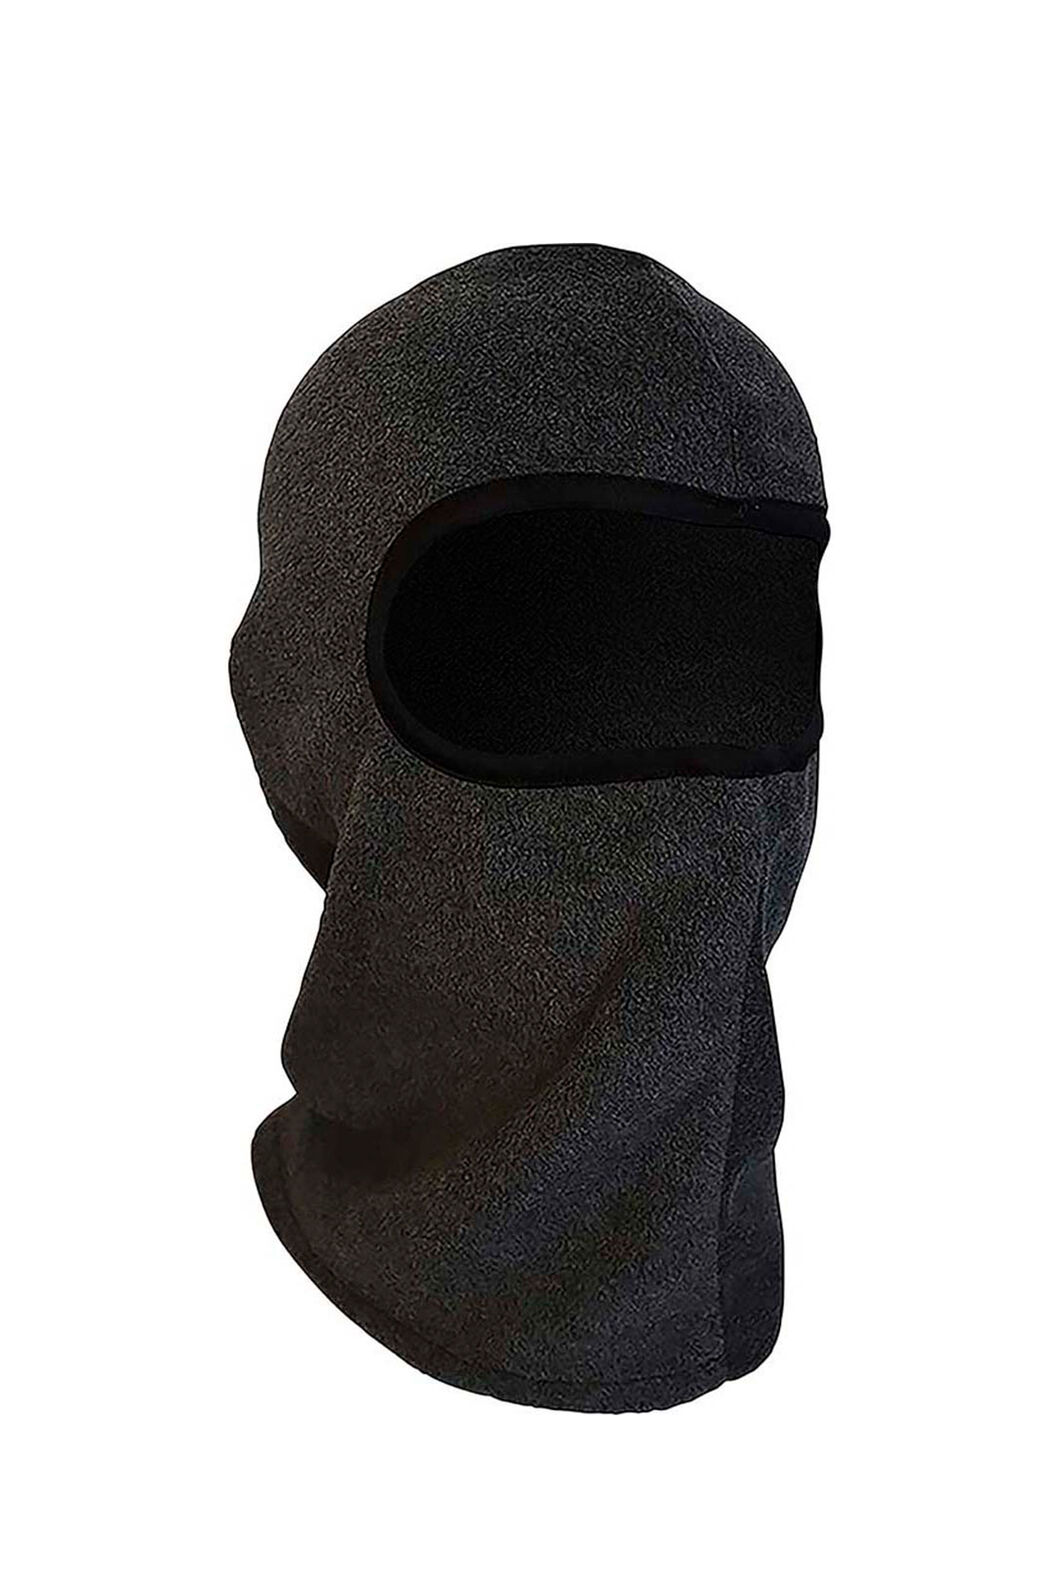 XTM Spy Balaclava, Dark Grey Marle, hi-res